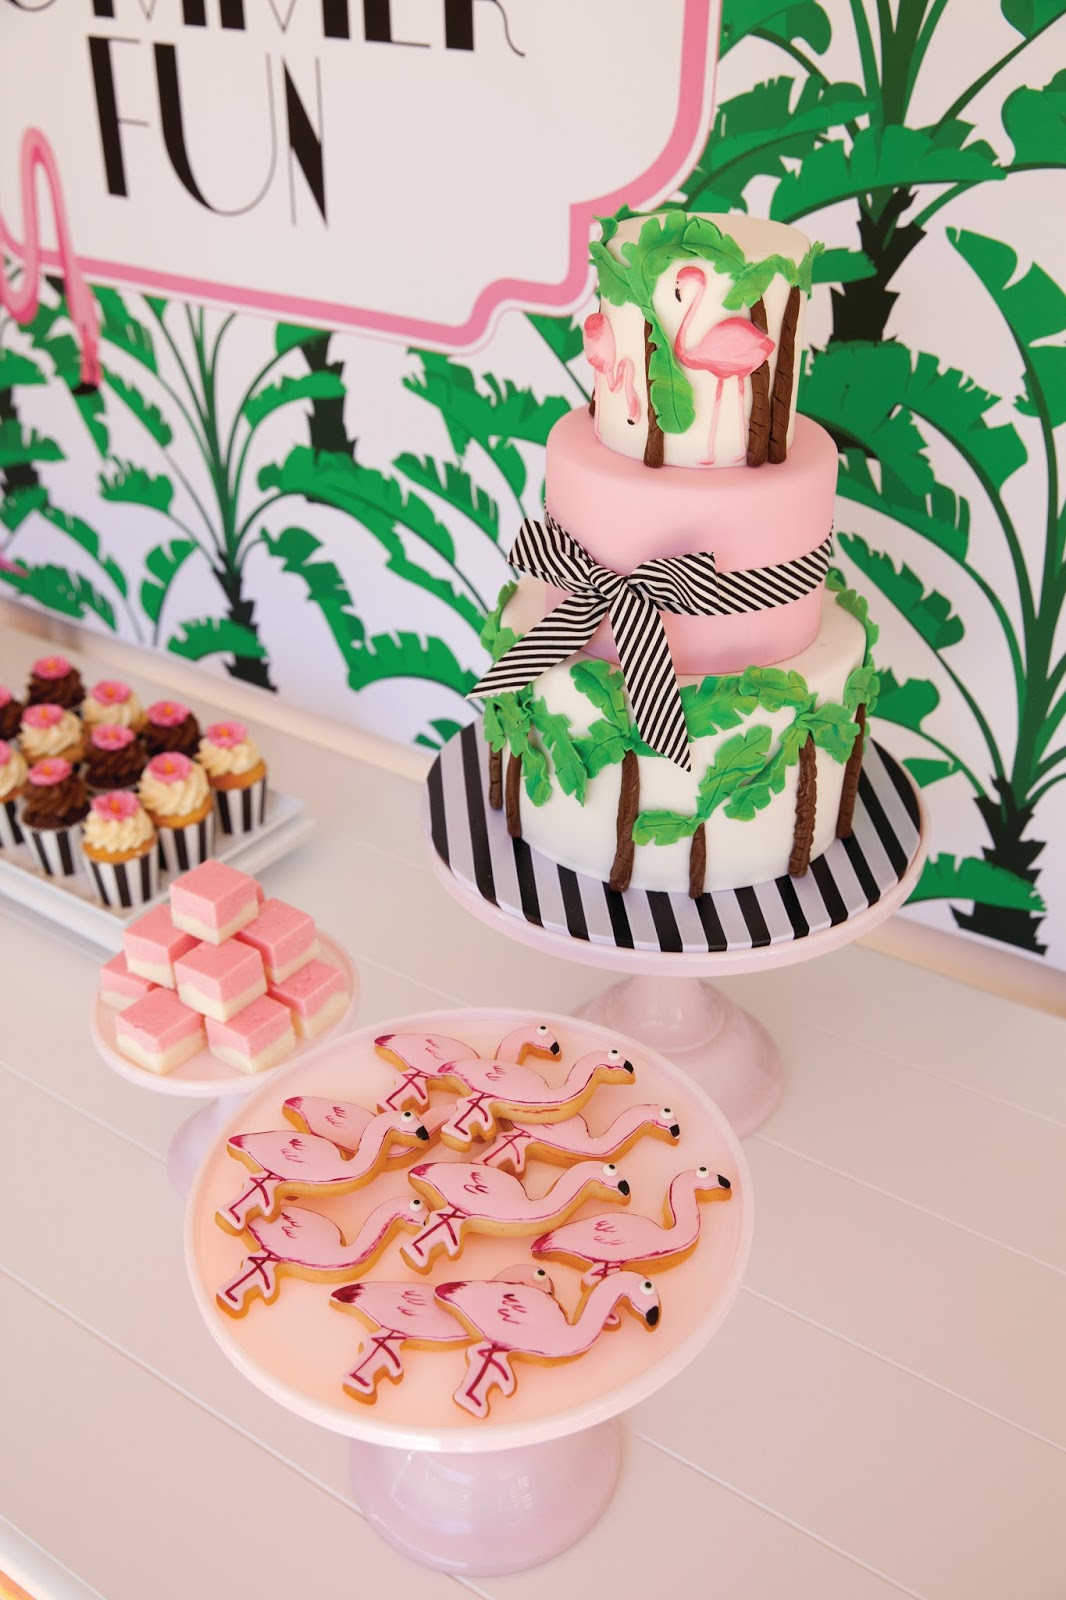 Best ideas about Flamingo Birthday Party . Save or Pin A Palm Beach Chic Flamingo Party The Glam Pad Now.